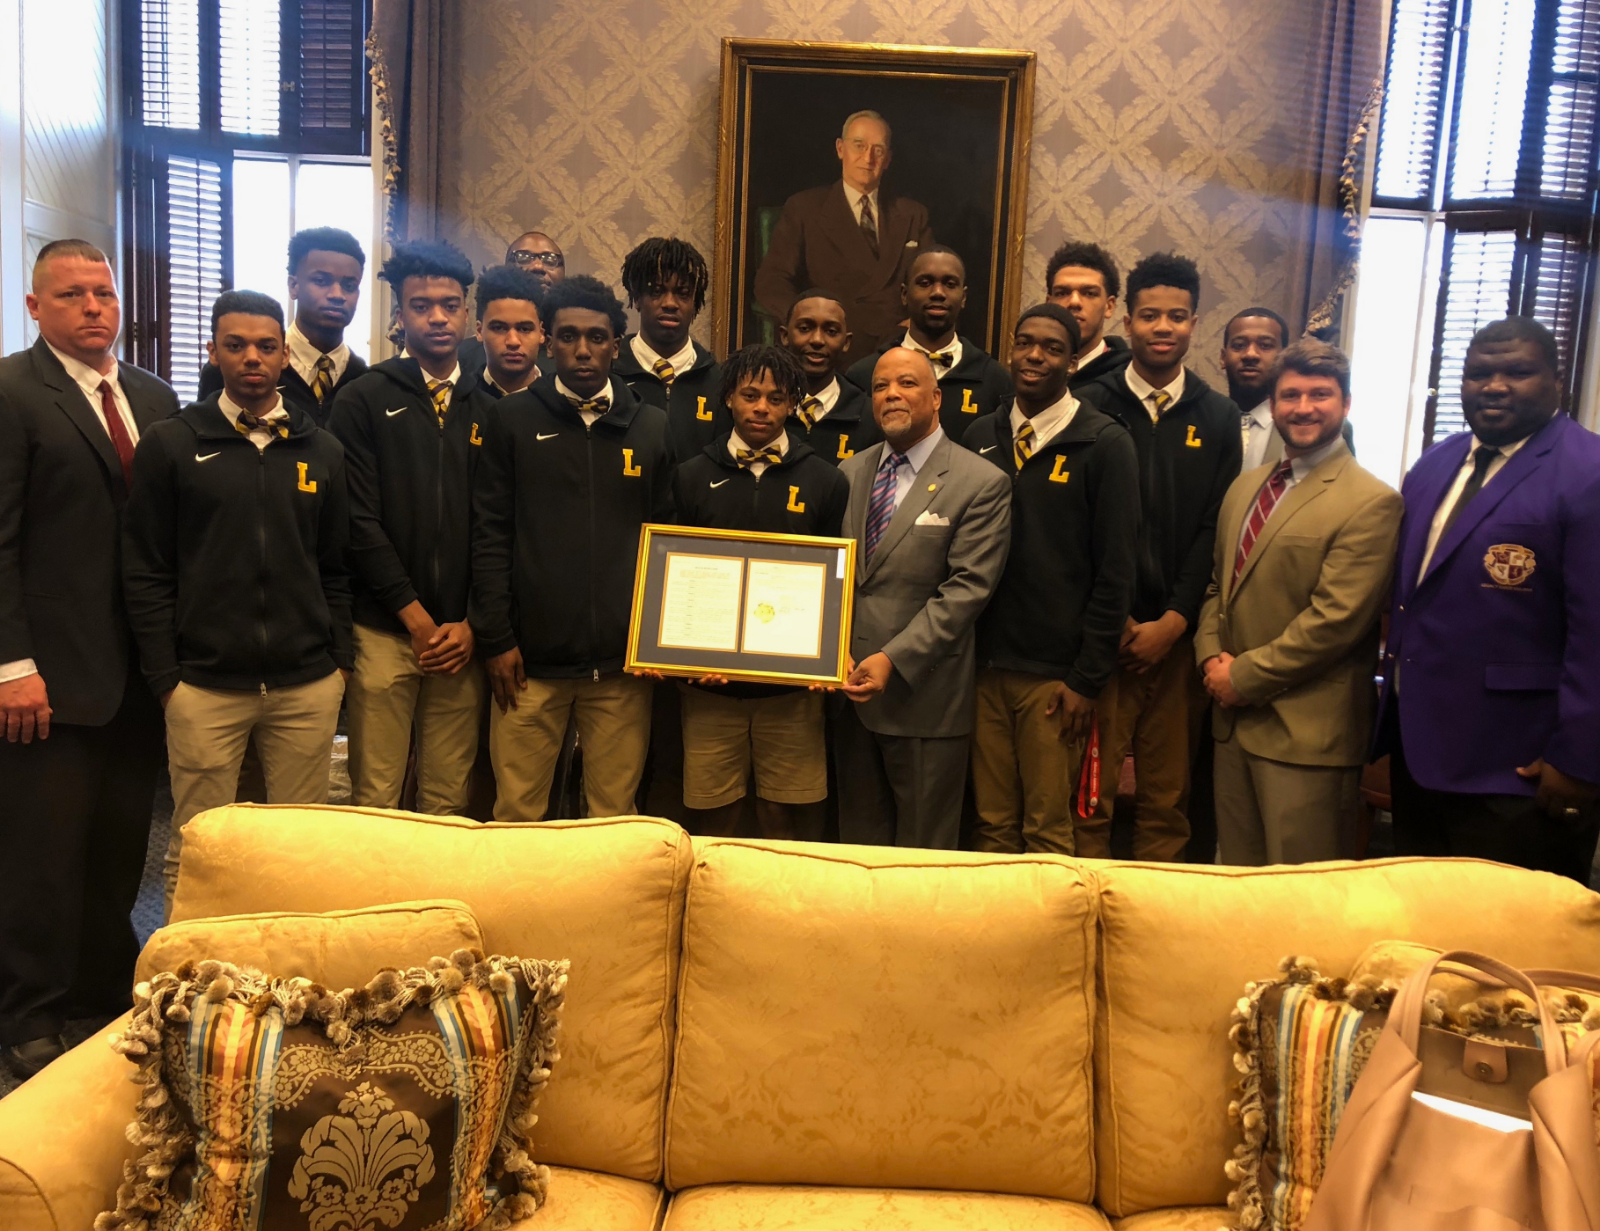 Boys' National Team Honored by SC House of Representatives